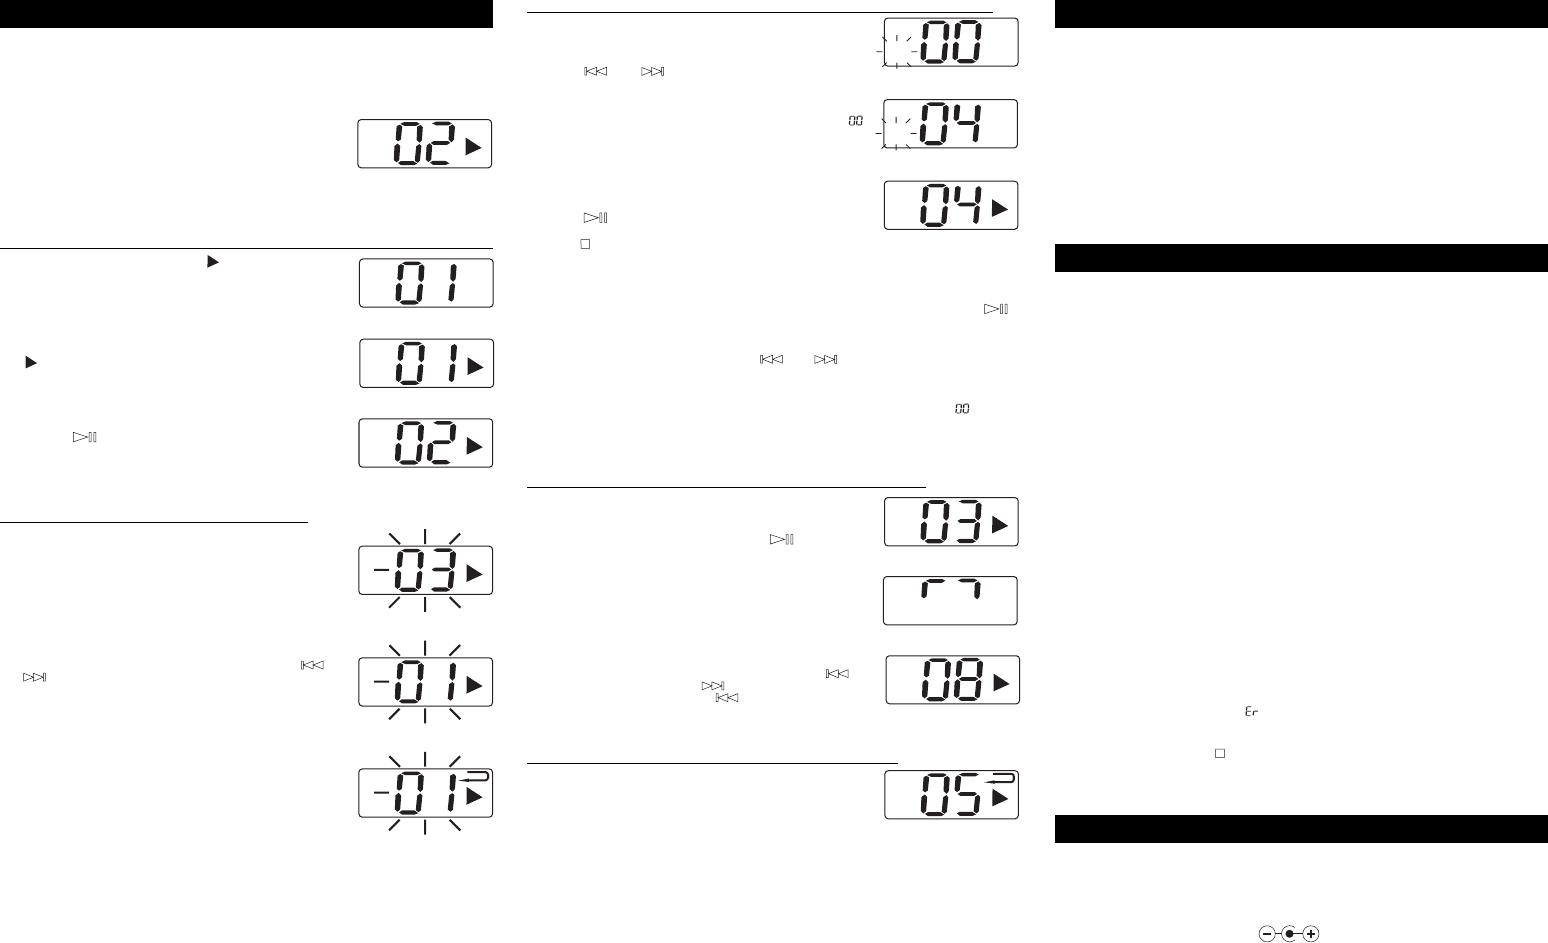 Page 2 of Audiovox CD Player 811-870091-170 User Guide